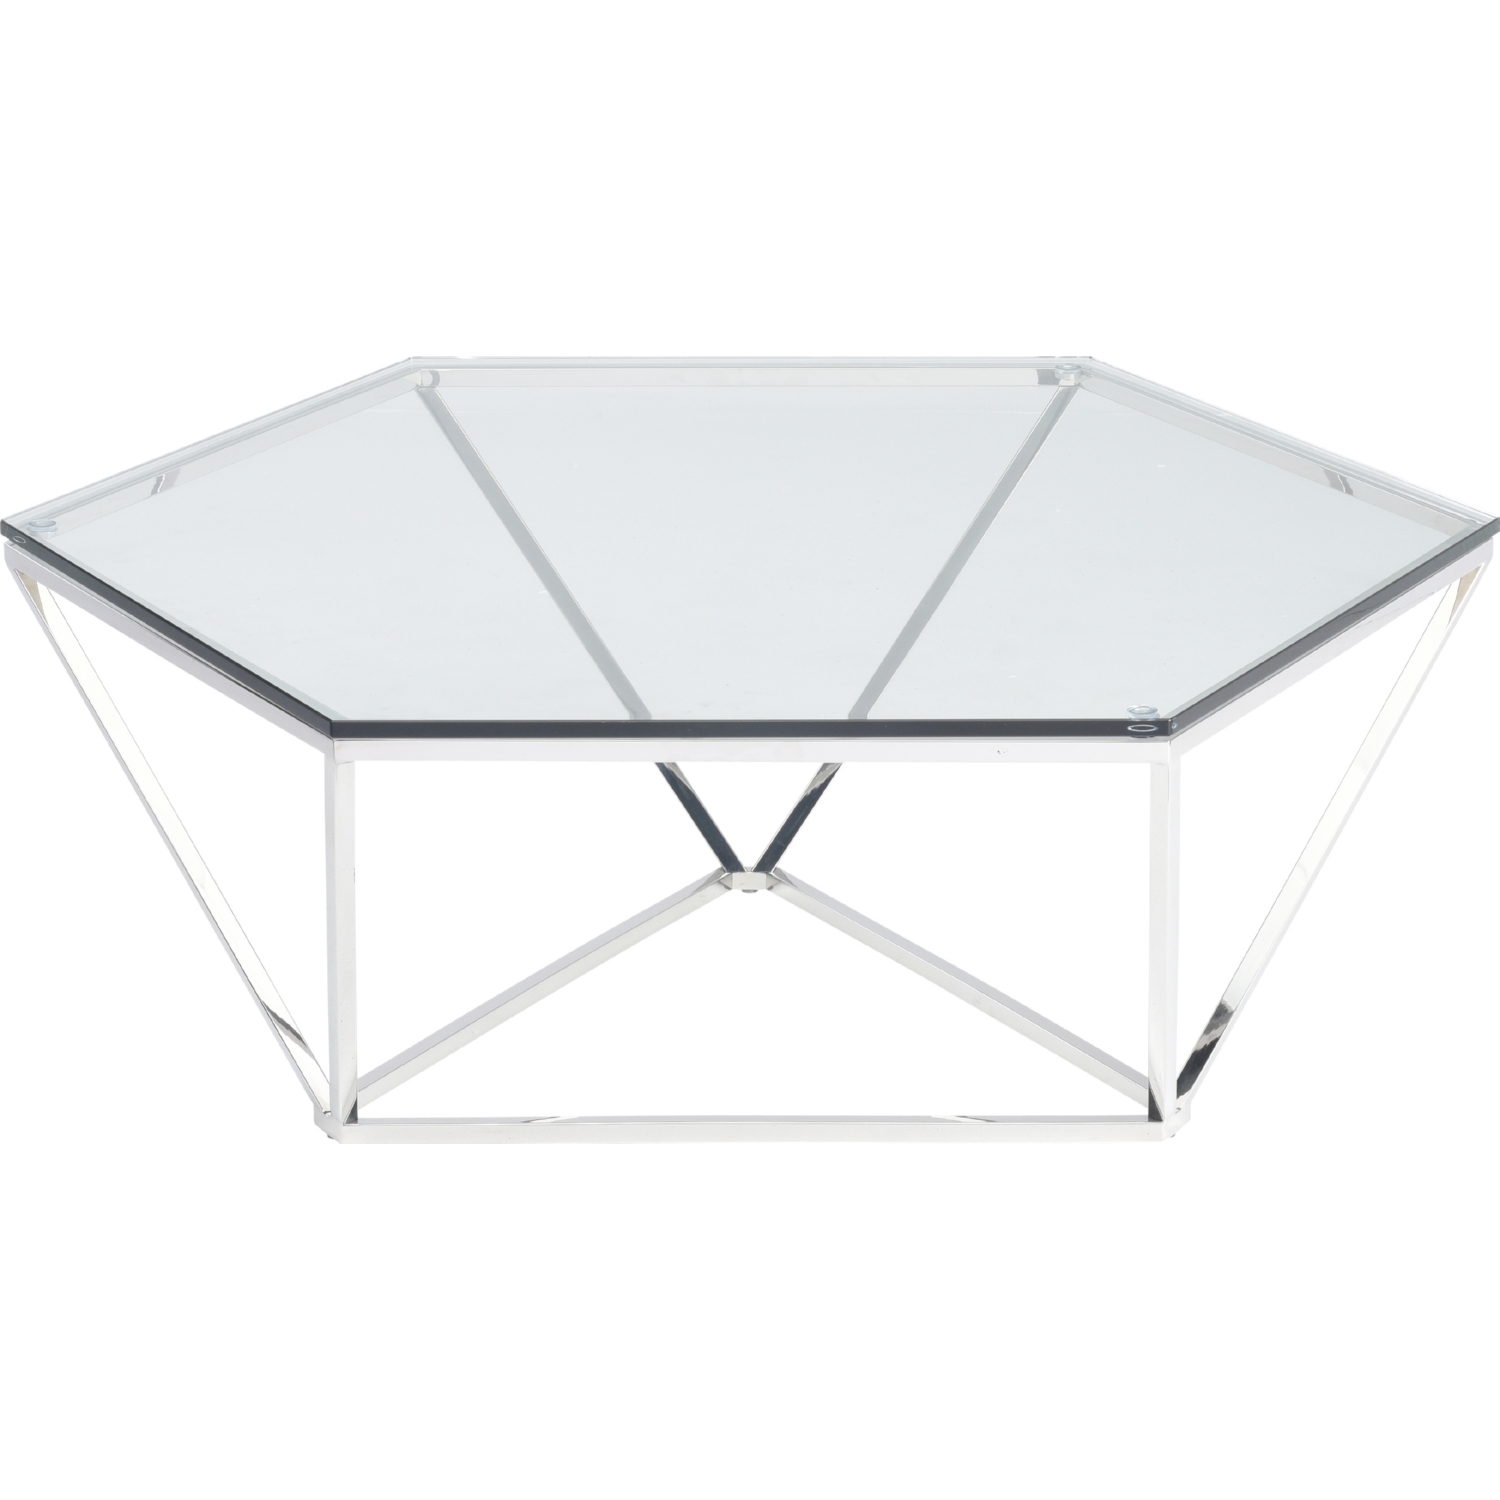 Incredible Louisa Coffee Table W Tempered Glass Top On Polished Stainless Base By Nuevo Modern Furniture Andrewgaddart Wooden Chair Designs For Living Room Andrewgaddartcom